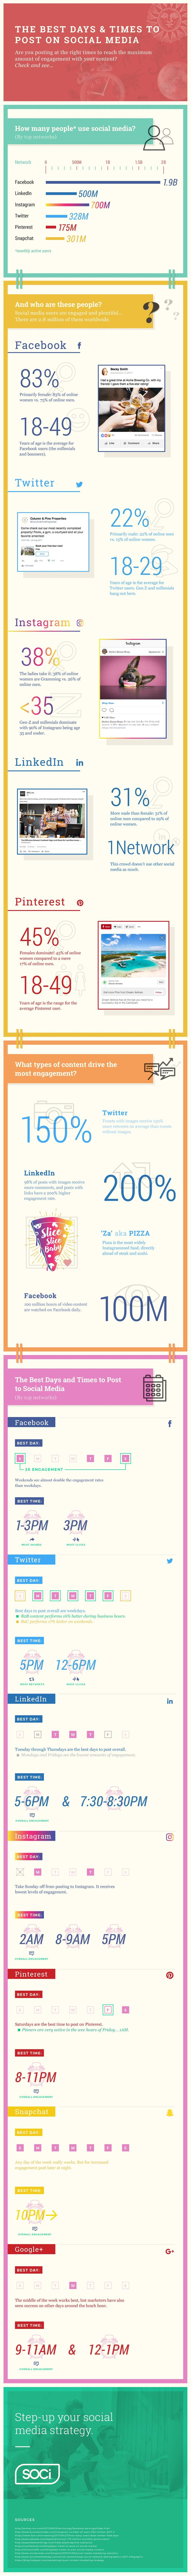 The Best Days and Times to Post to Social Media - #infographic